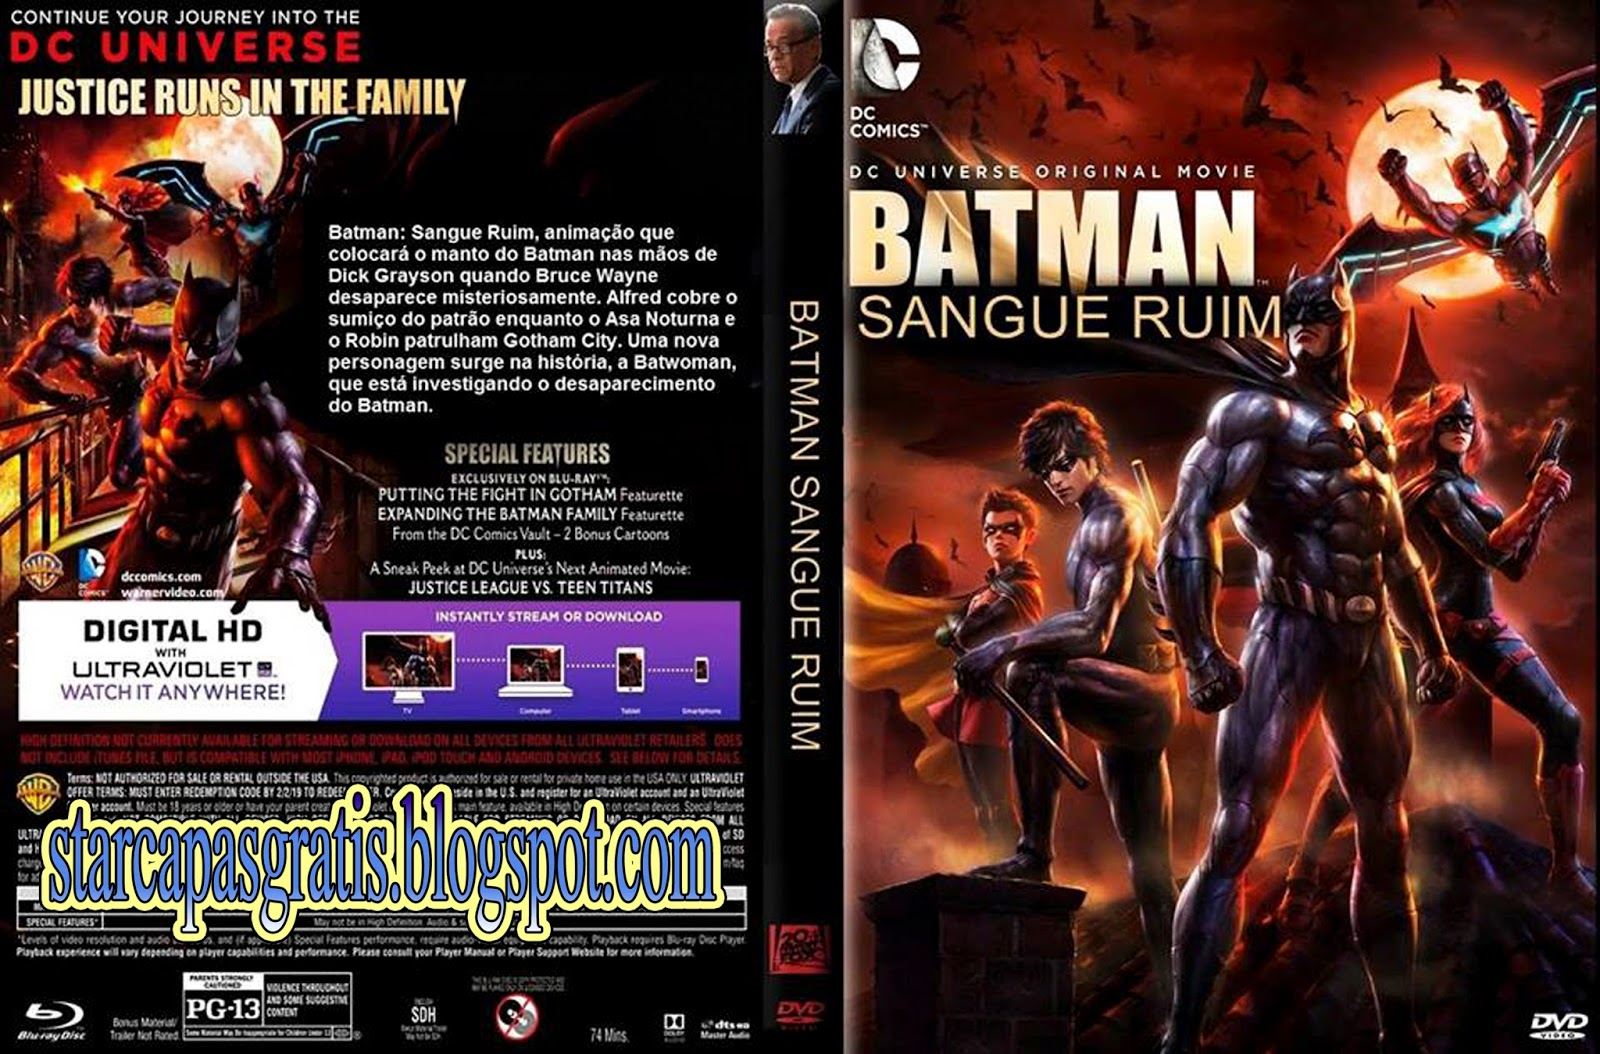 Batman sangue ruim 2016 bluray 1080p dublado - 2 10